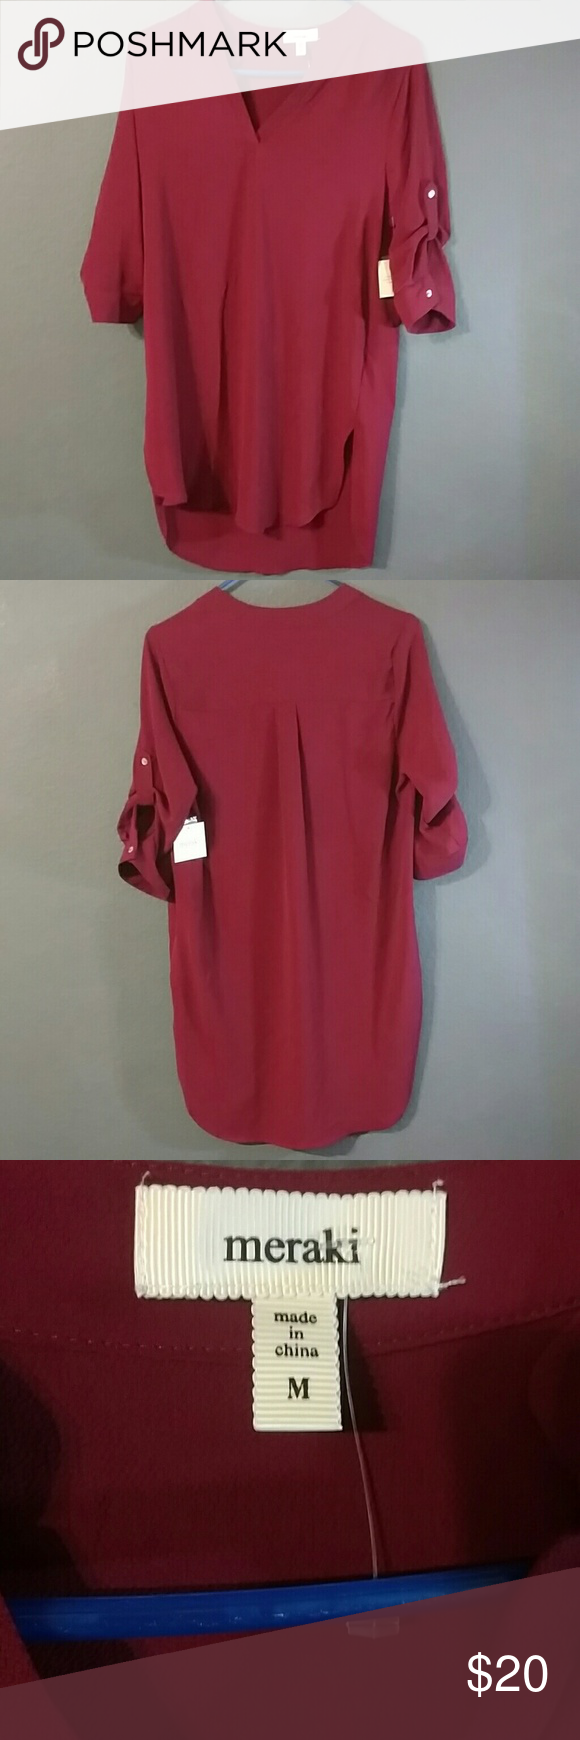 NWT High low shirt NWT. Burgundy.   ? Note: Please ask me before you buy or bundle wether this item is still available as I'm selling it elsewhere too. Thank you! ?? Meraki Dresses High Low